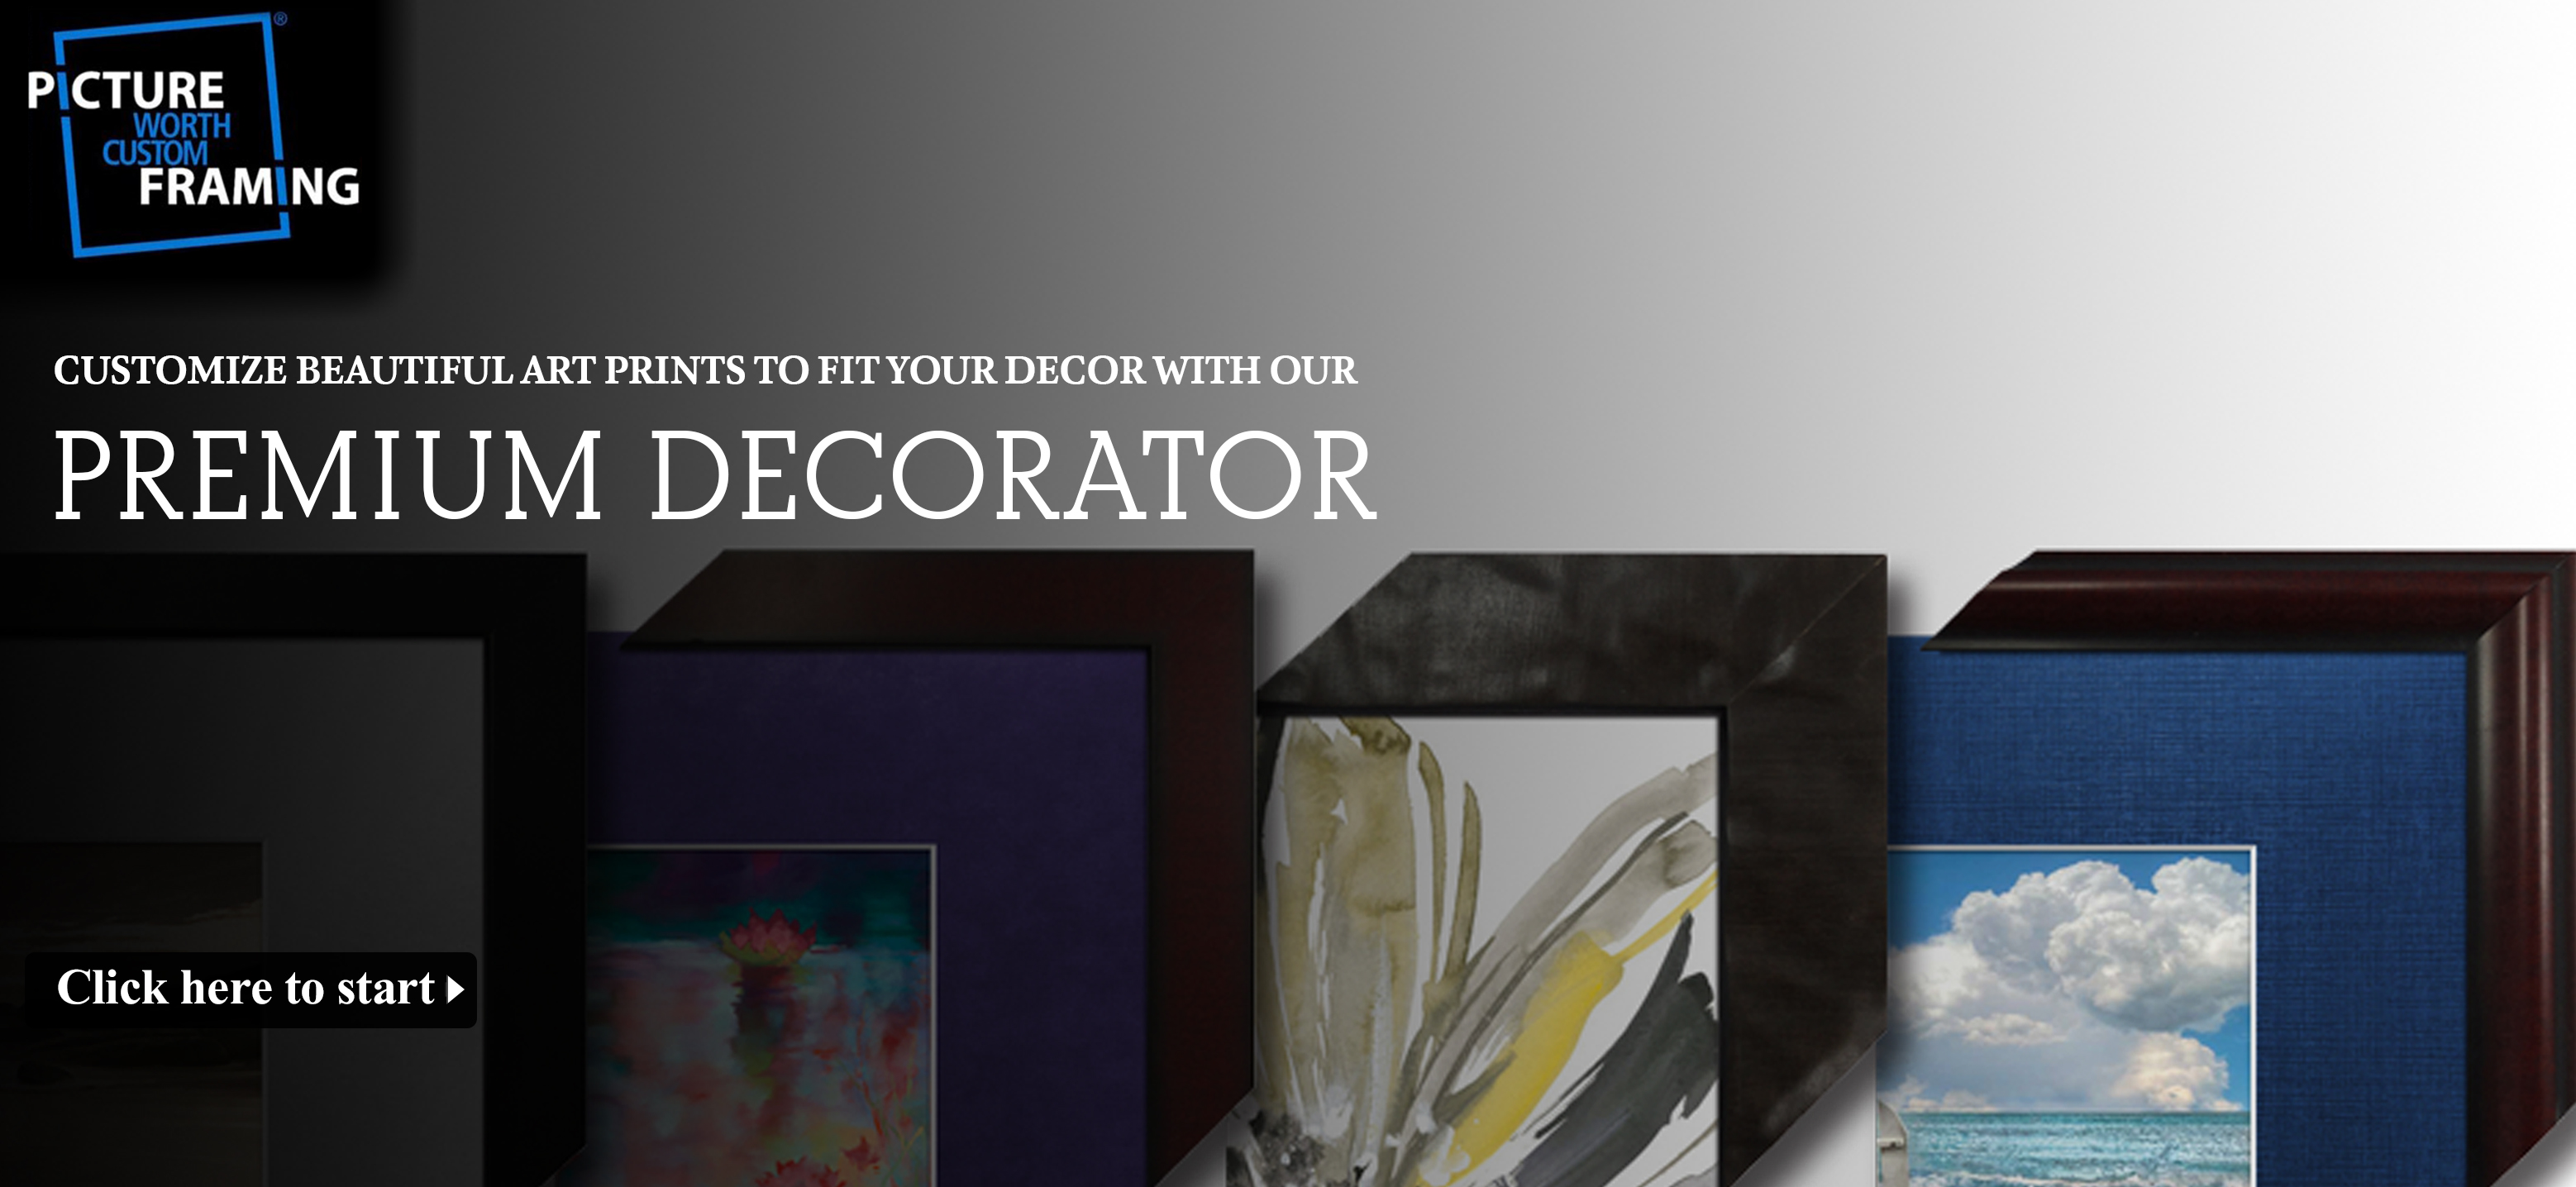 Best Custom Art and Wall Décor Online| Picture Worth Custom Framing